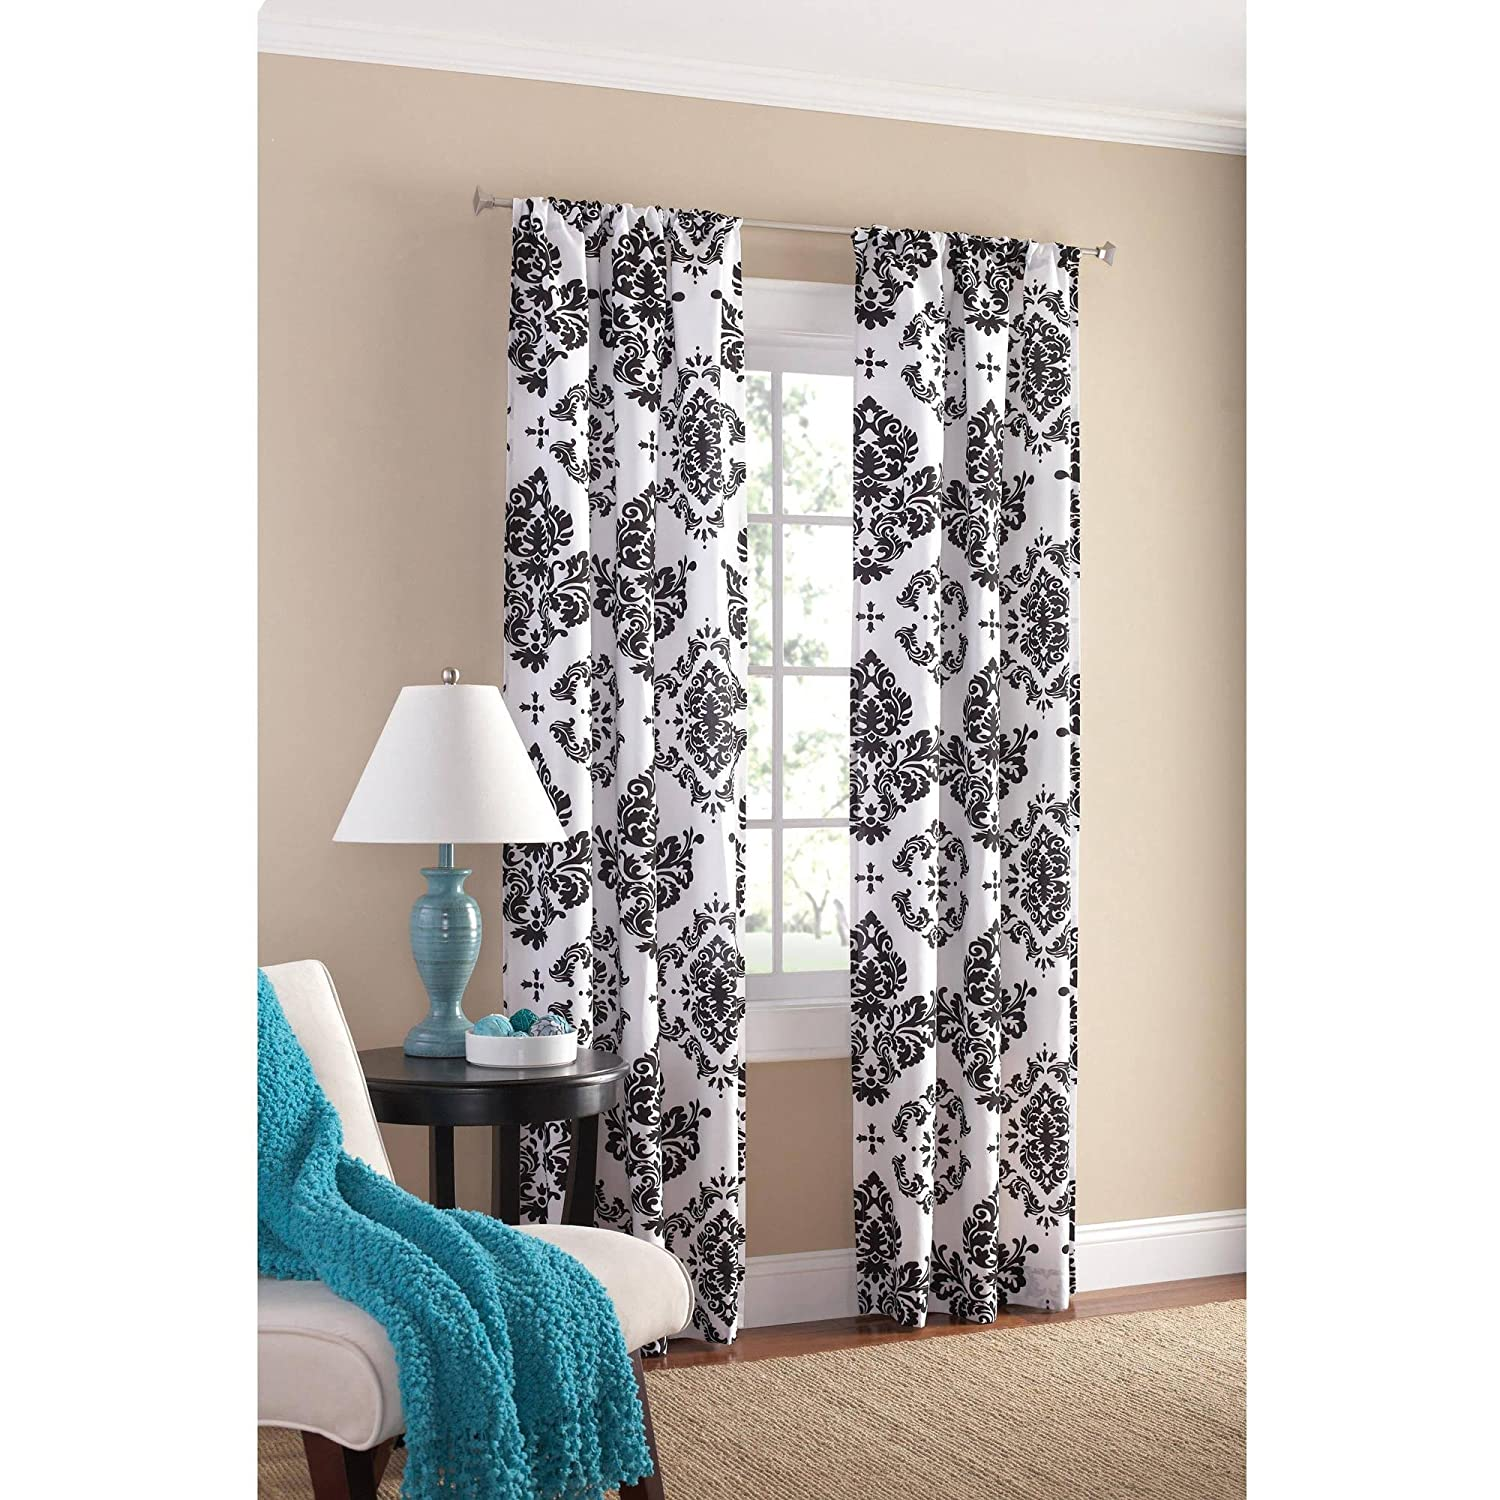 Black and white curtains - Amazon Com Black And White Damask Curtain Panel Set Of 2 40x84 Inch Home Kitchen